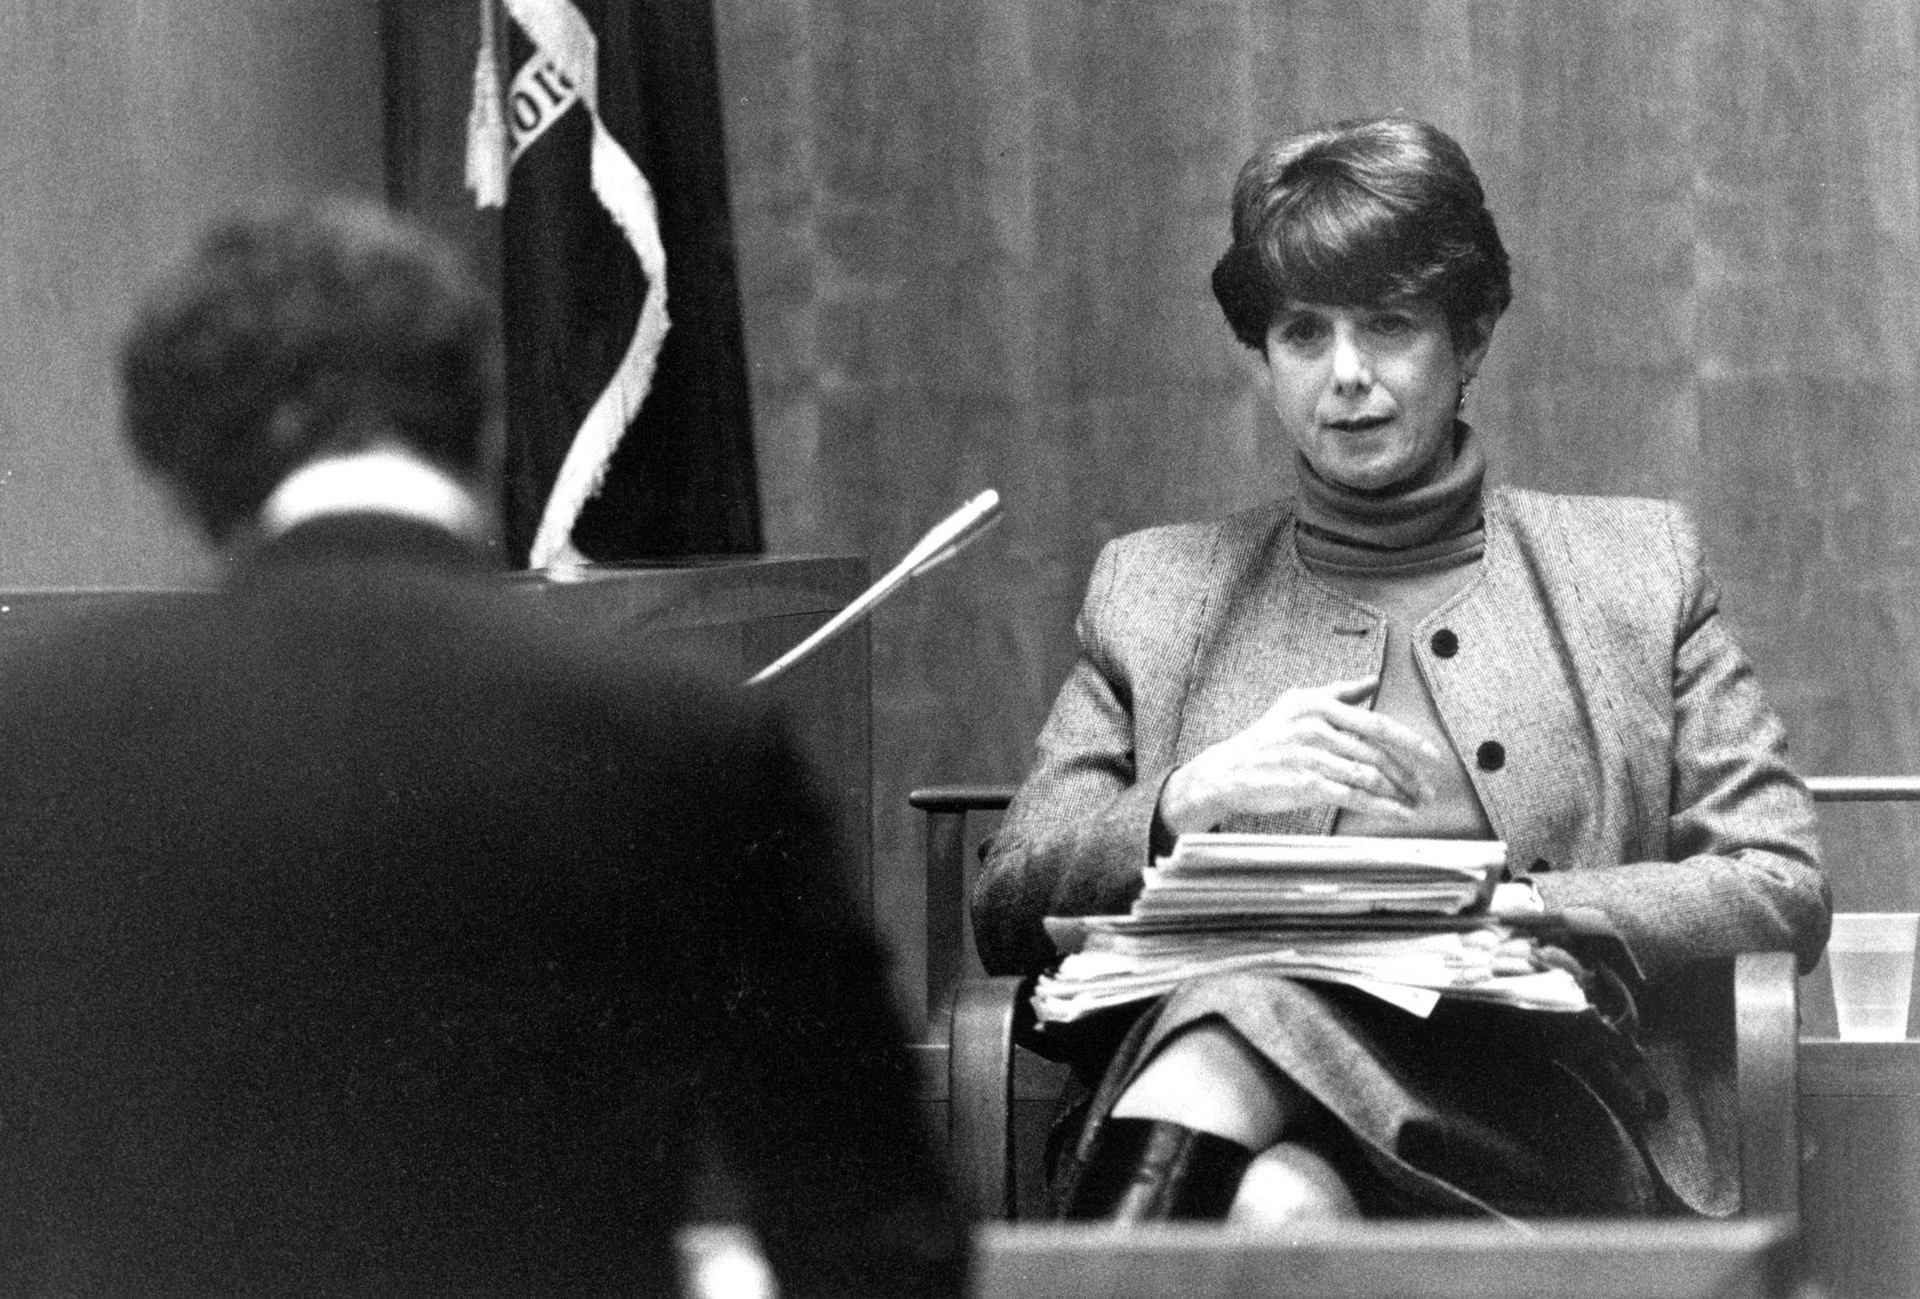 What We Get Wrong About Serial Killers, According to an Expert